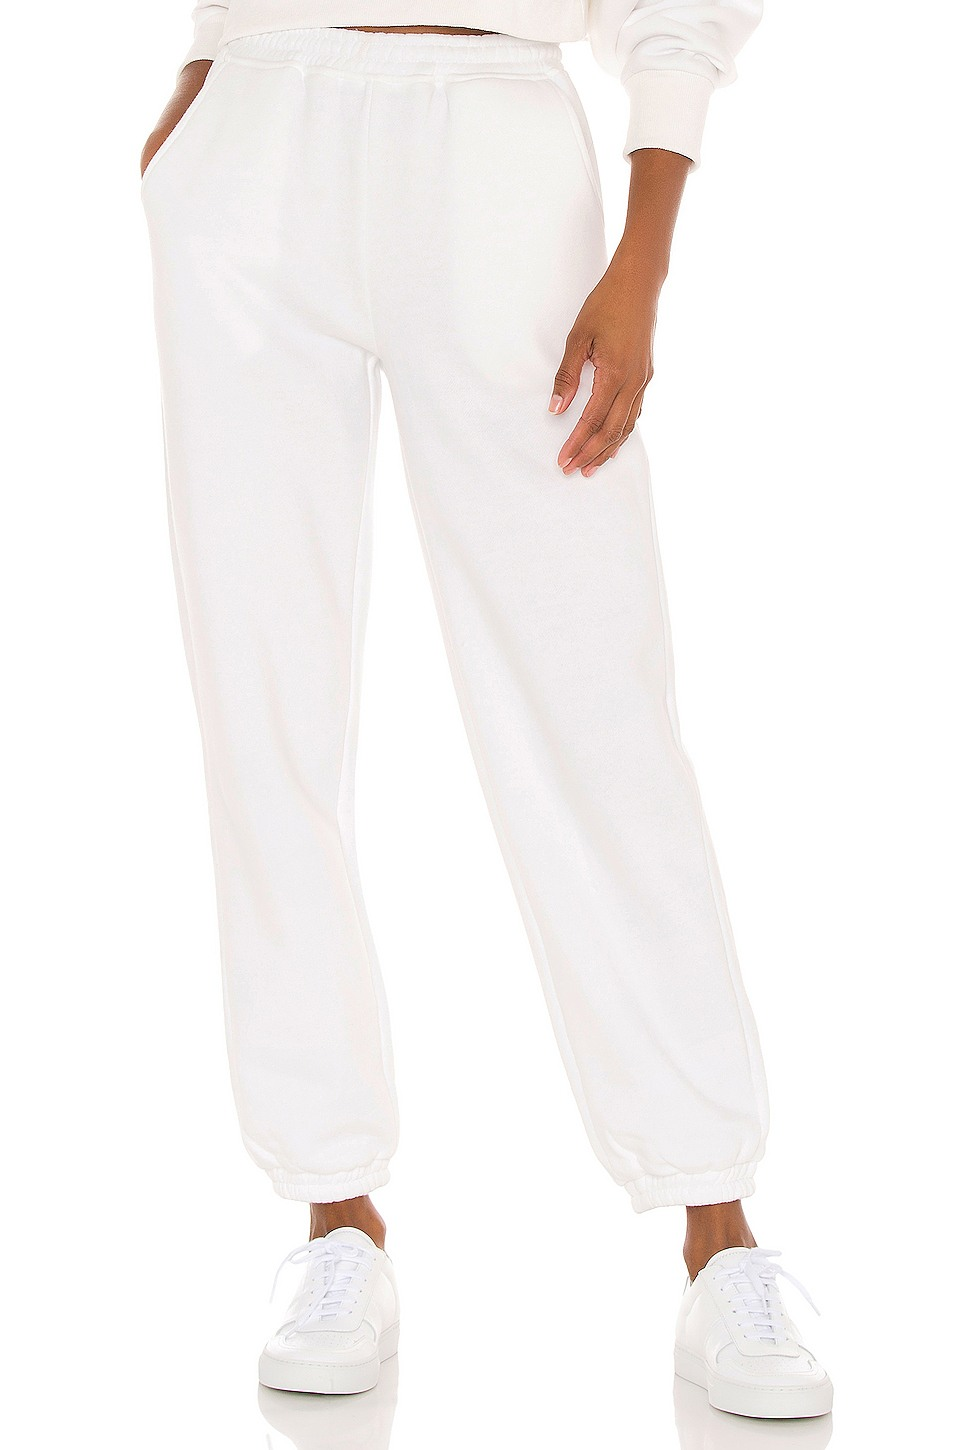 x Rozalia No Text Track Pant by Atoir, available on revolve.com for $121 Kylie Jenner Pants Exact Product